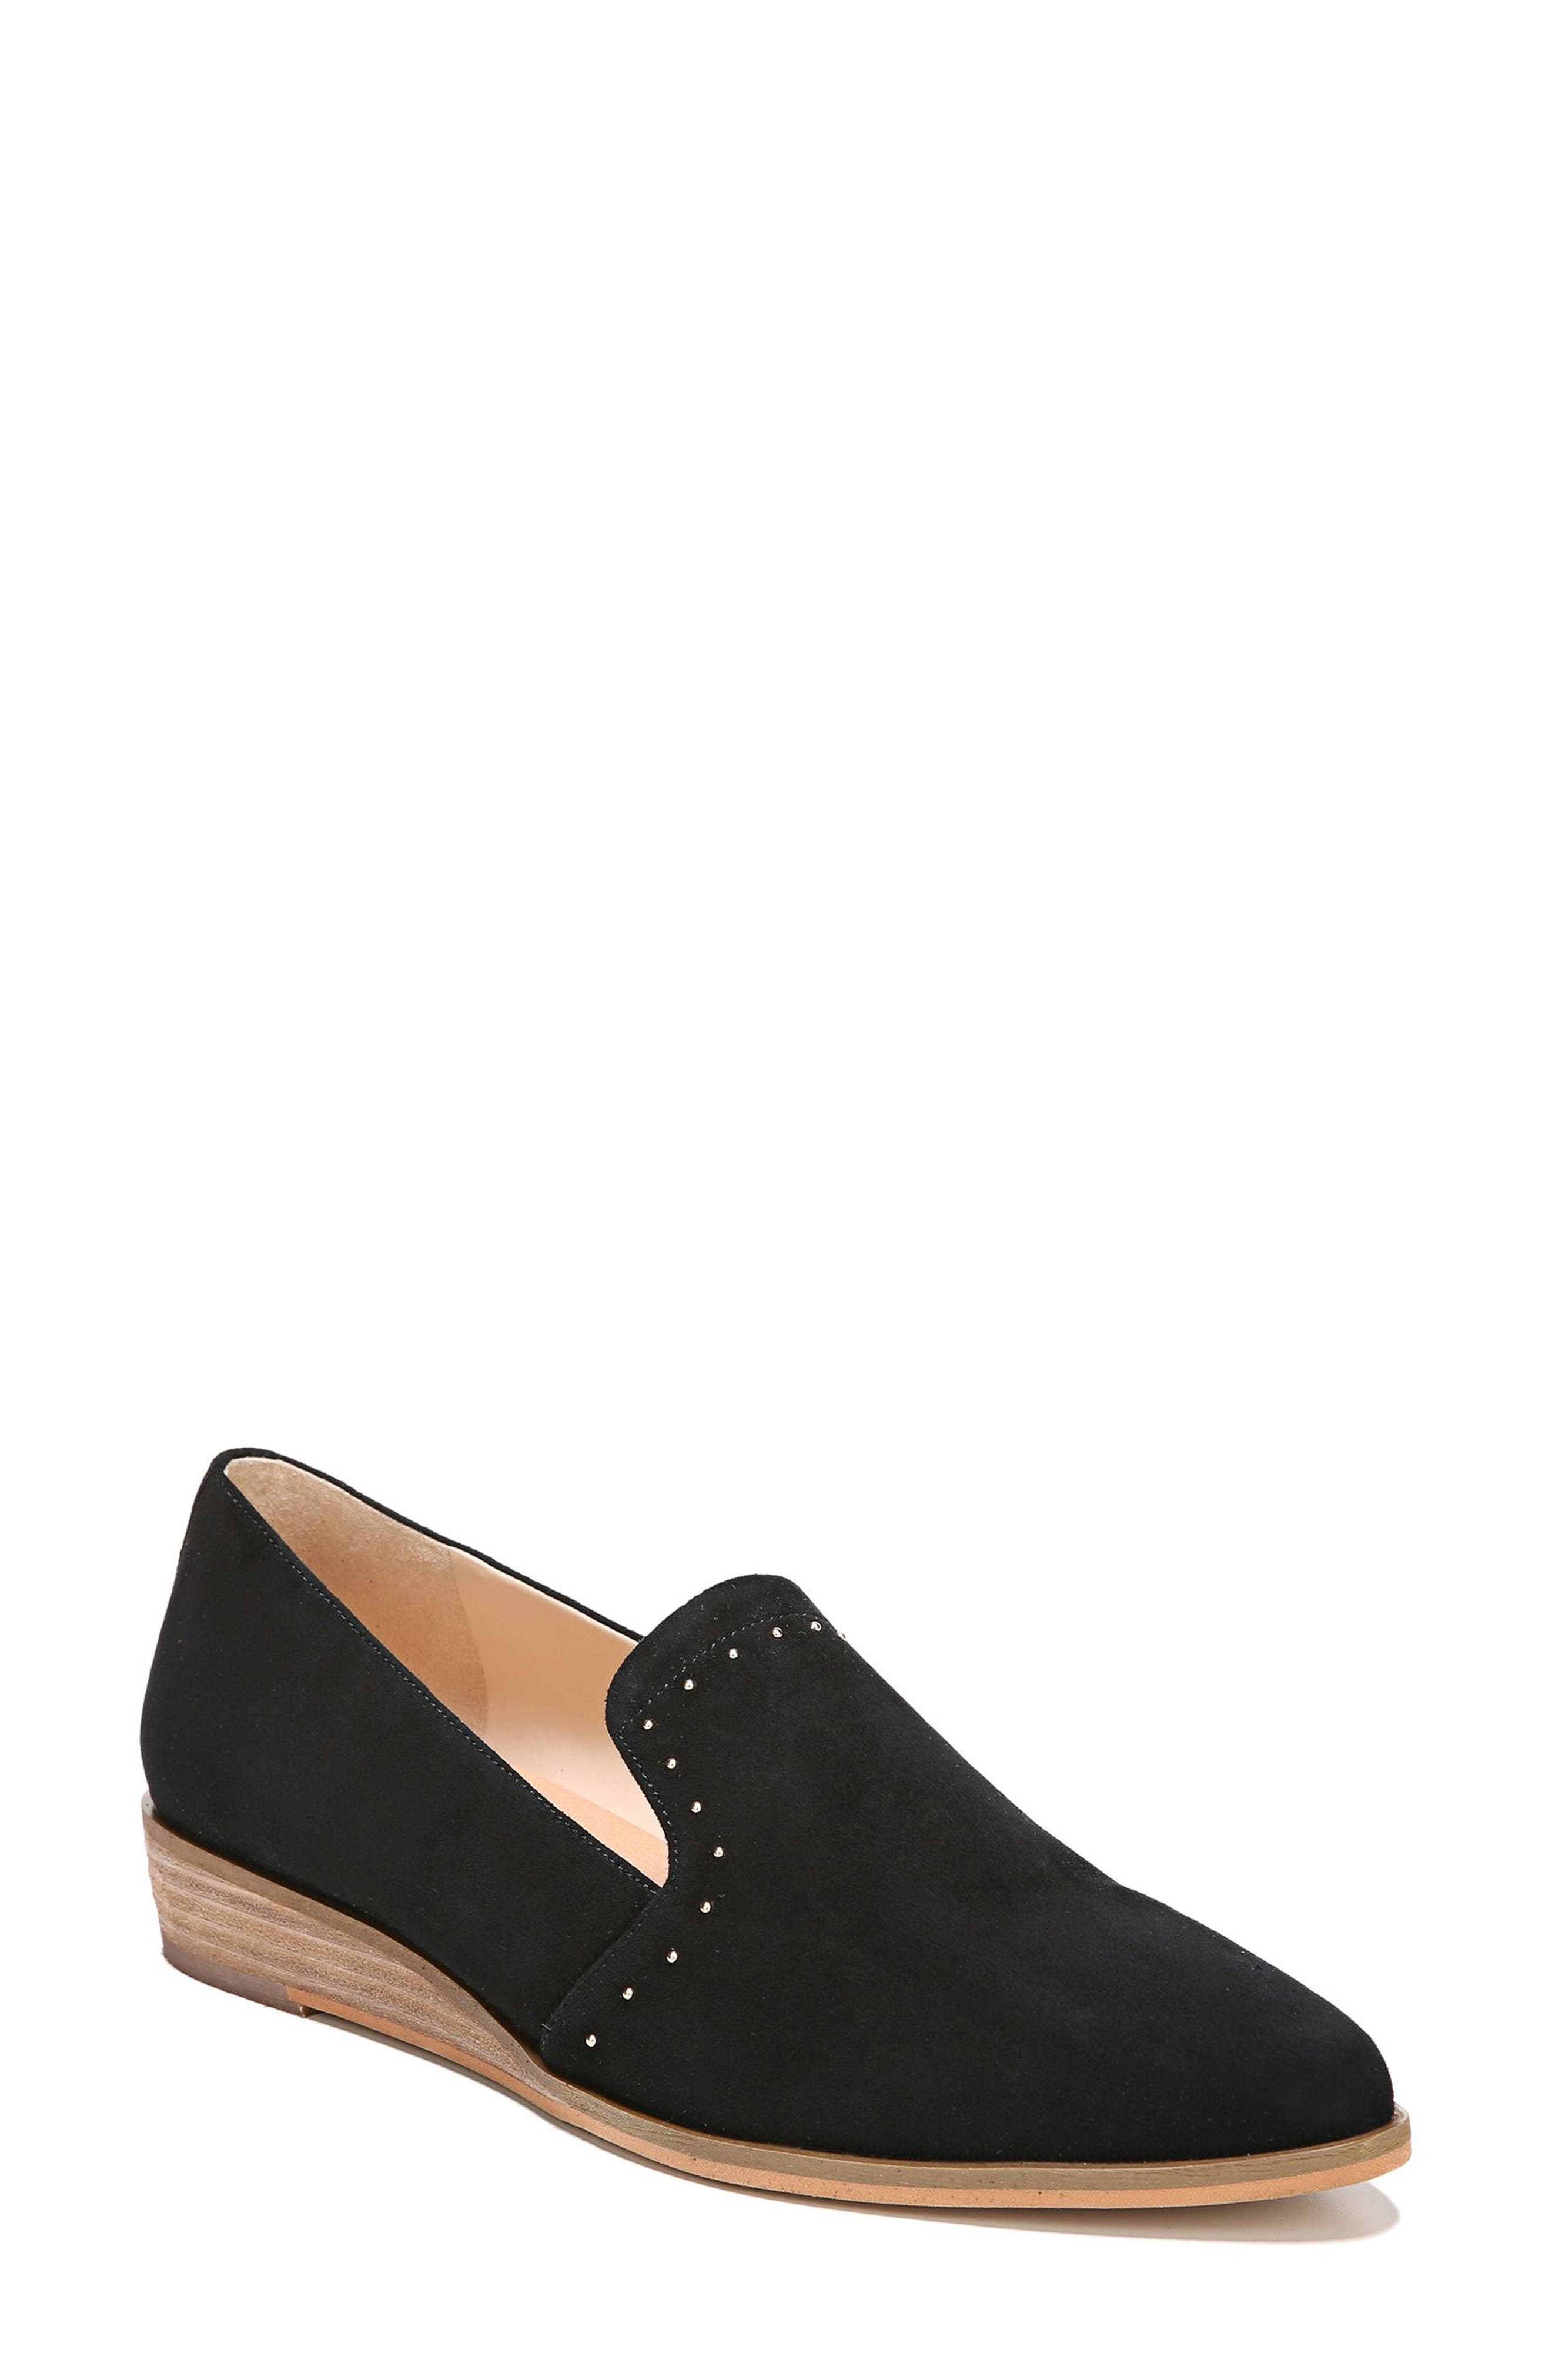 Keane Loafer Wedge,                         Main,                         color,